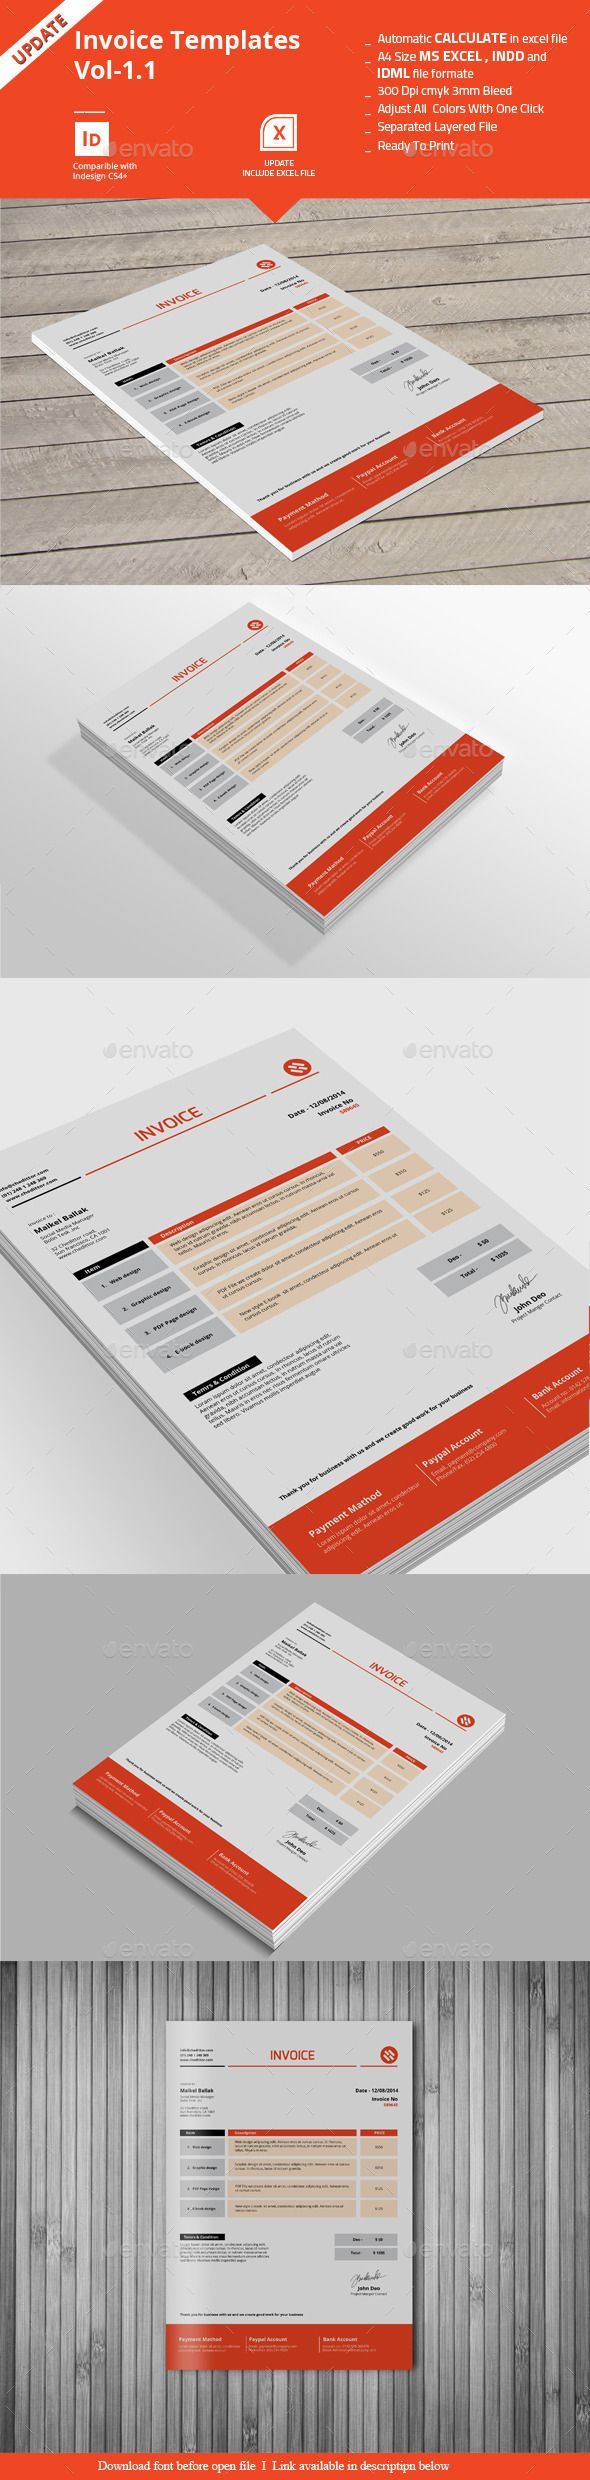 Invoice Templates Vol  Template Proposal Templates And Font Logo